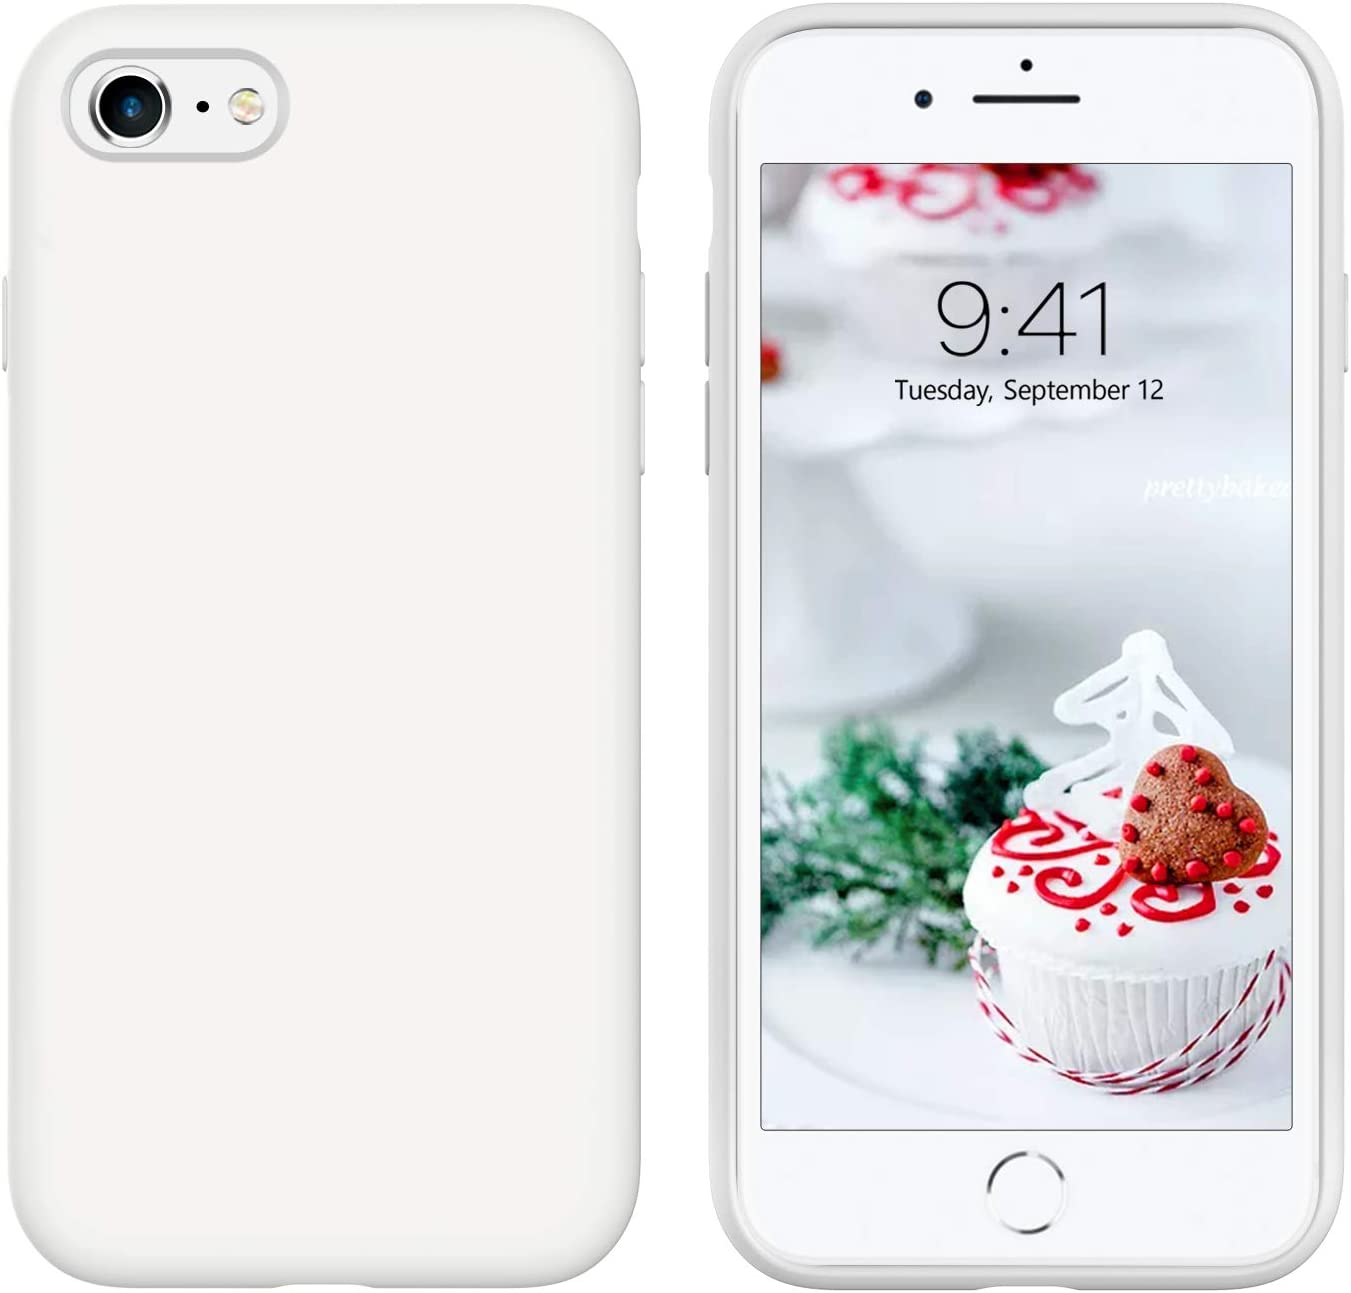 GUAGUA iPhone SE 2020 Case iPhone 8 Case iPhone 7 Case 4.7-inch Liquid Silicone Soft Gel Slim Microfiber Lining Cushion Texture Cover Shockproof Protective Cases for iPhone 8/7/SE 2020 White